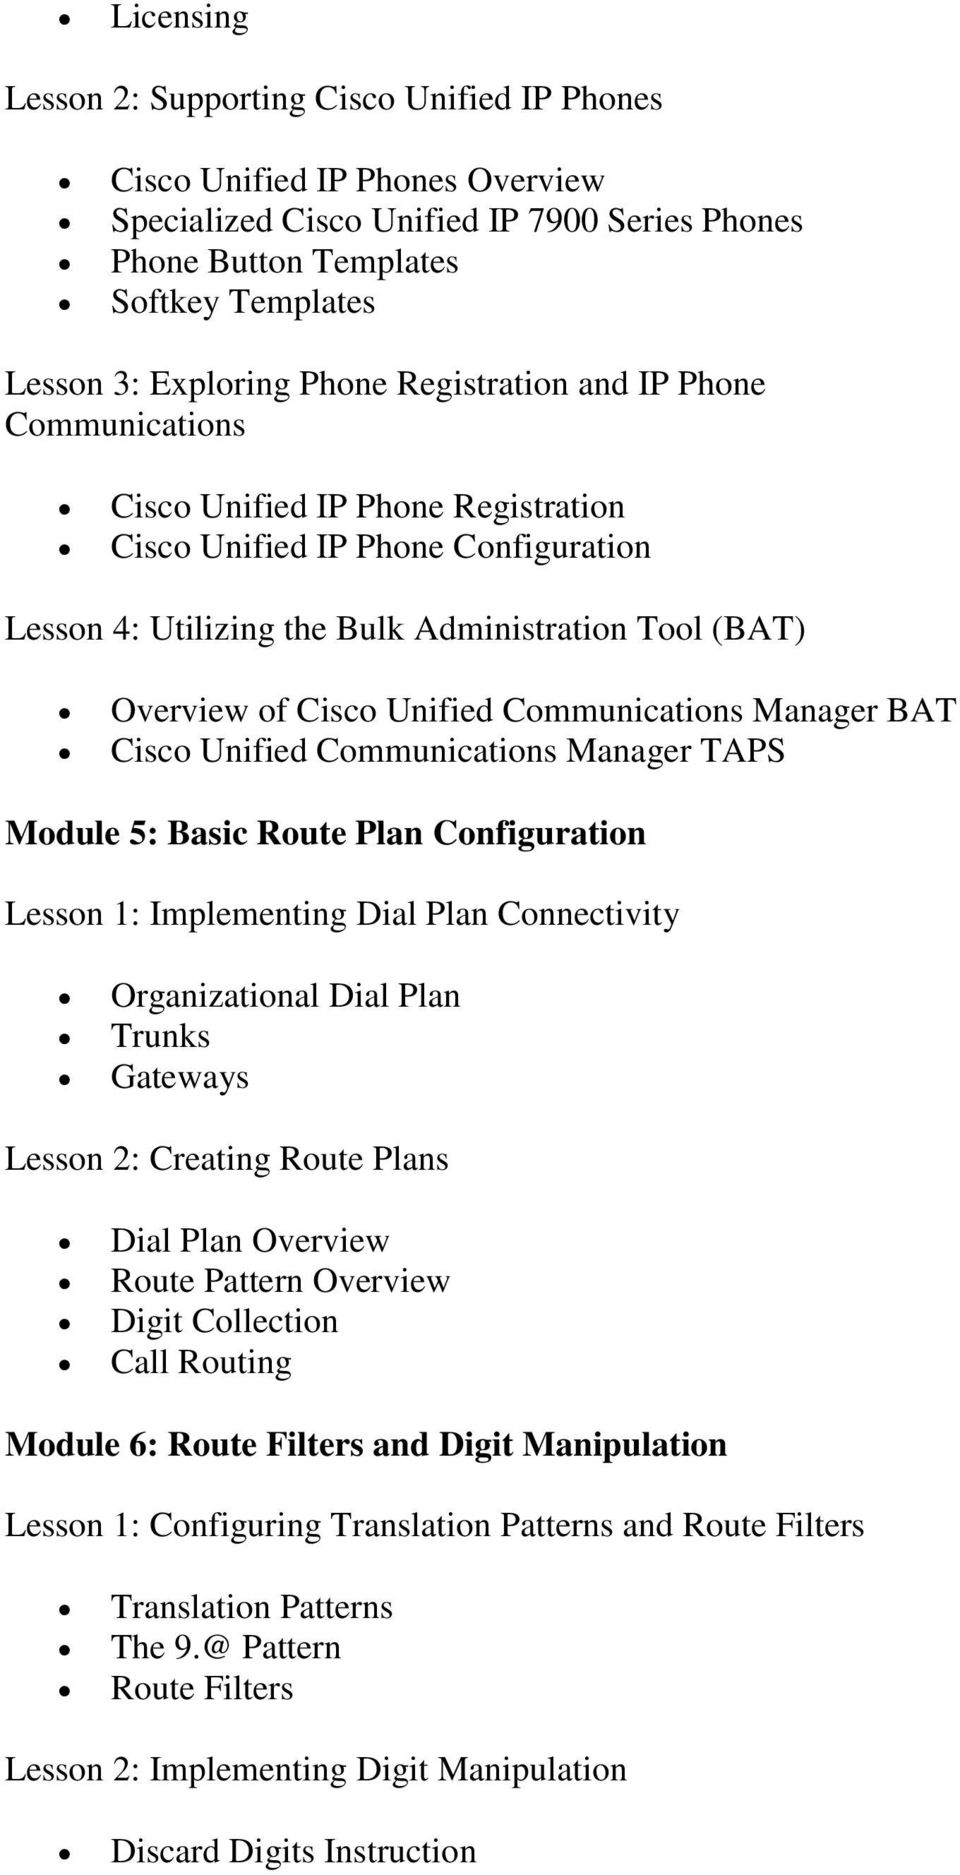 Unified Communications Manager BAT Cisco Unified Communications Manager TAPS Module 5: Basic Route Plan Configuration Lesson 1: Implementing Dial Plan Connectivity Organizational Dial Plan Trunks